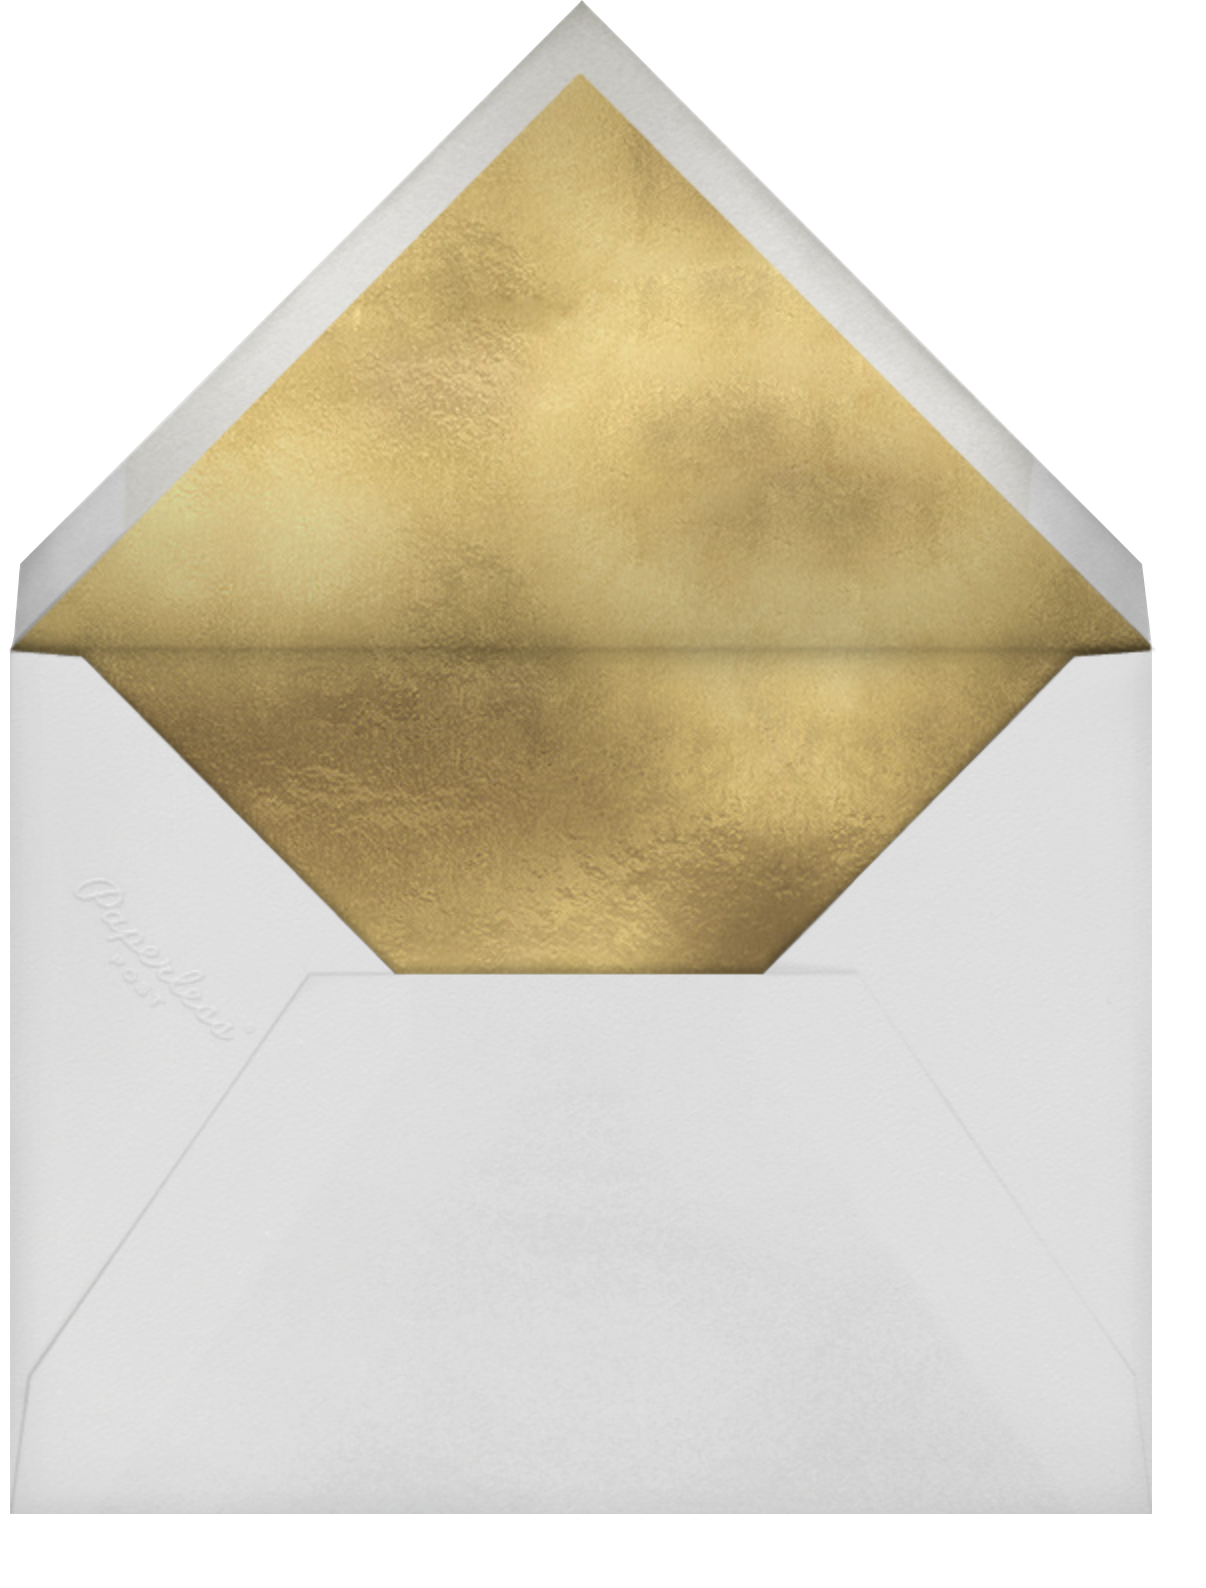 Castle Confetti - Mr. Boddington's Studio - Birthday - envelope back